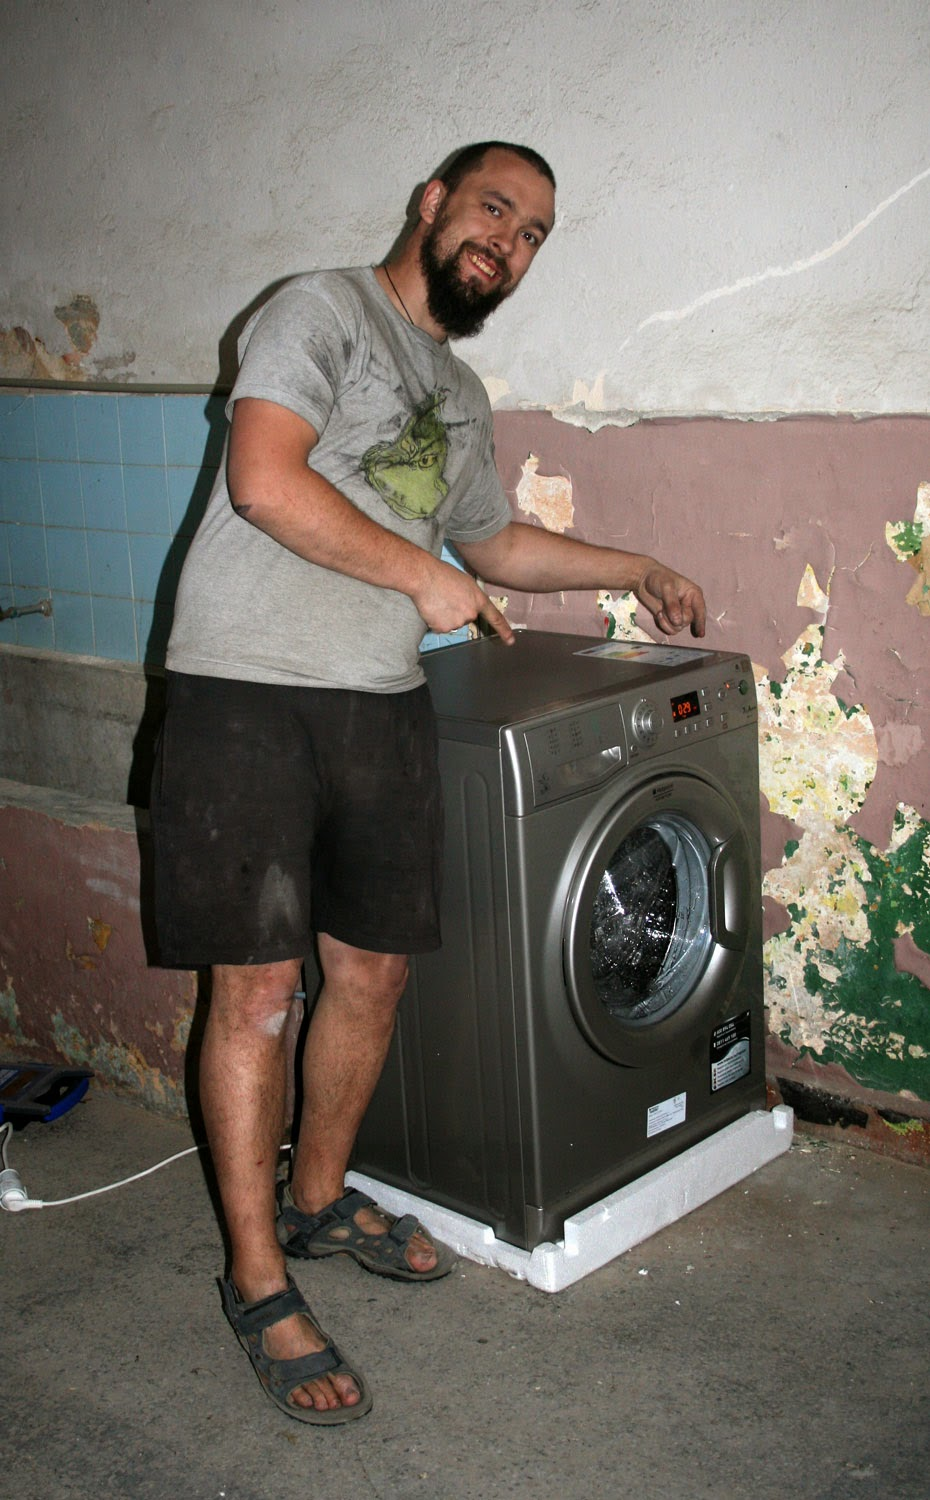 Proud man and his washing machine